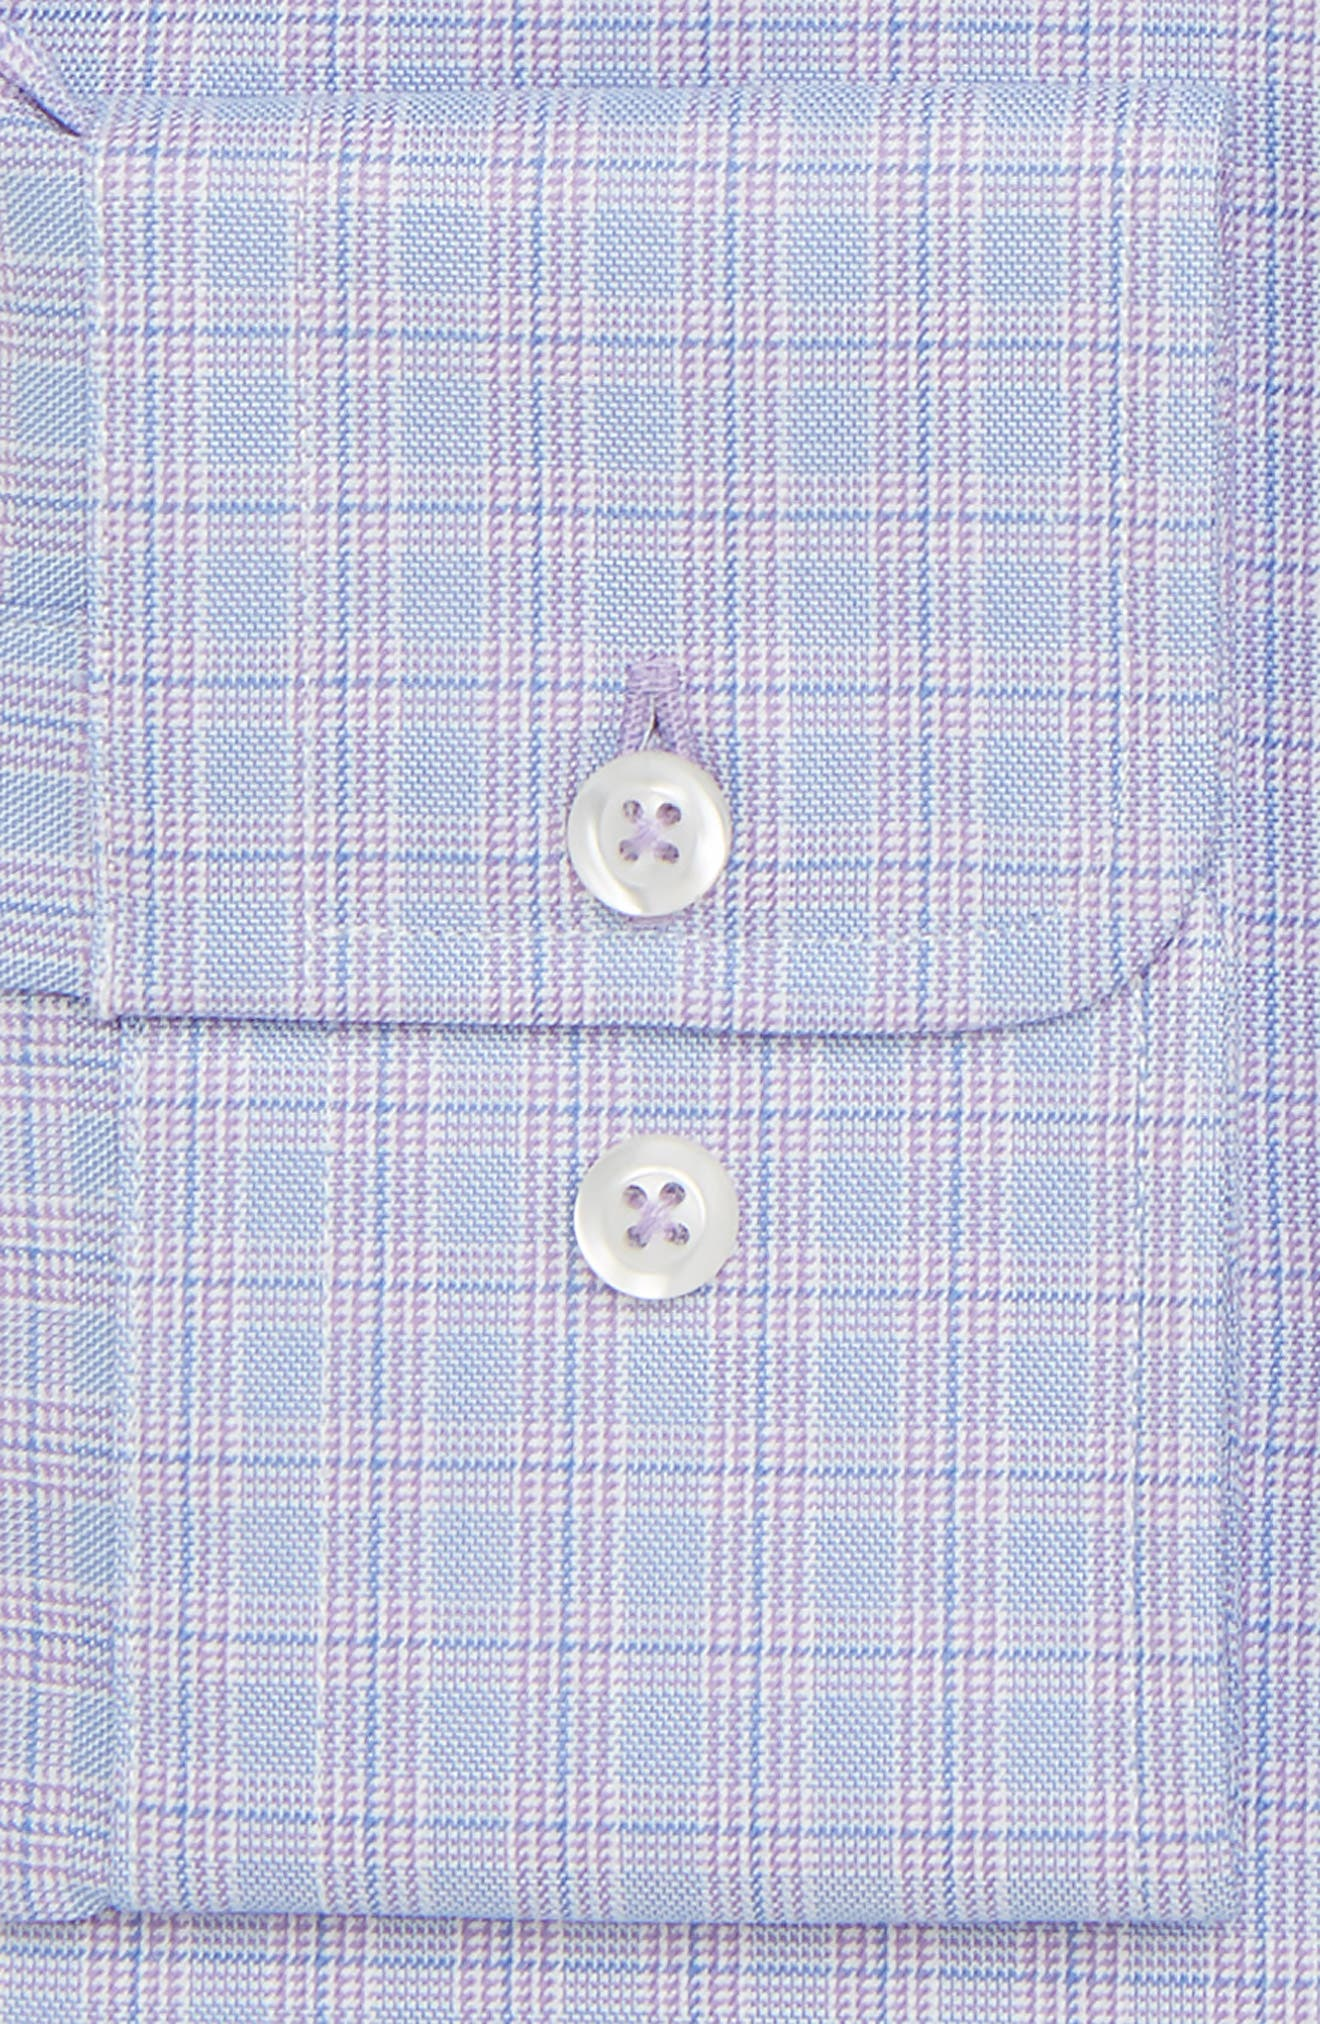 Trim Fit Plaid Dress Shirt,                             Alternate thumbnail 6, color,                             LILAC